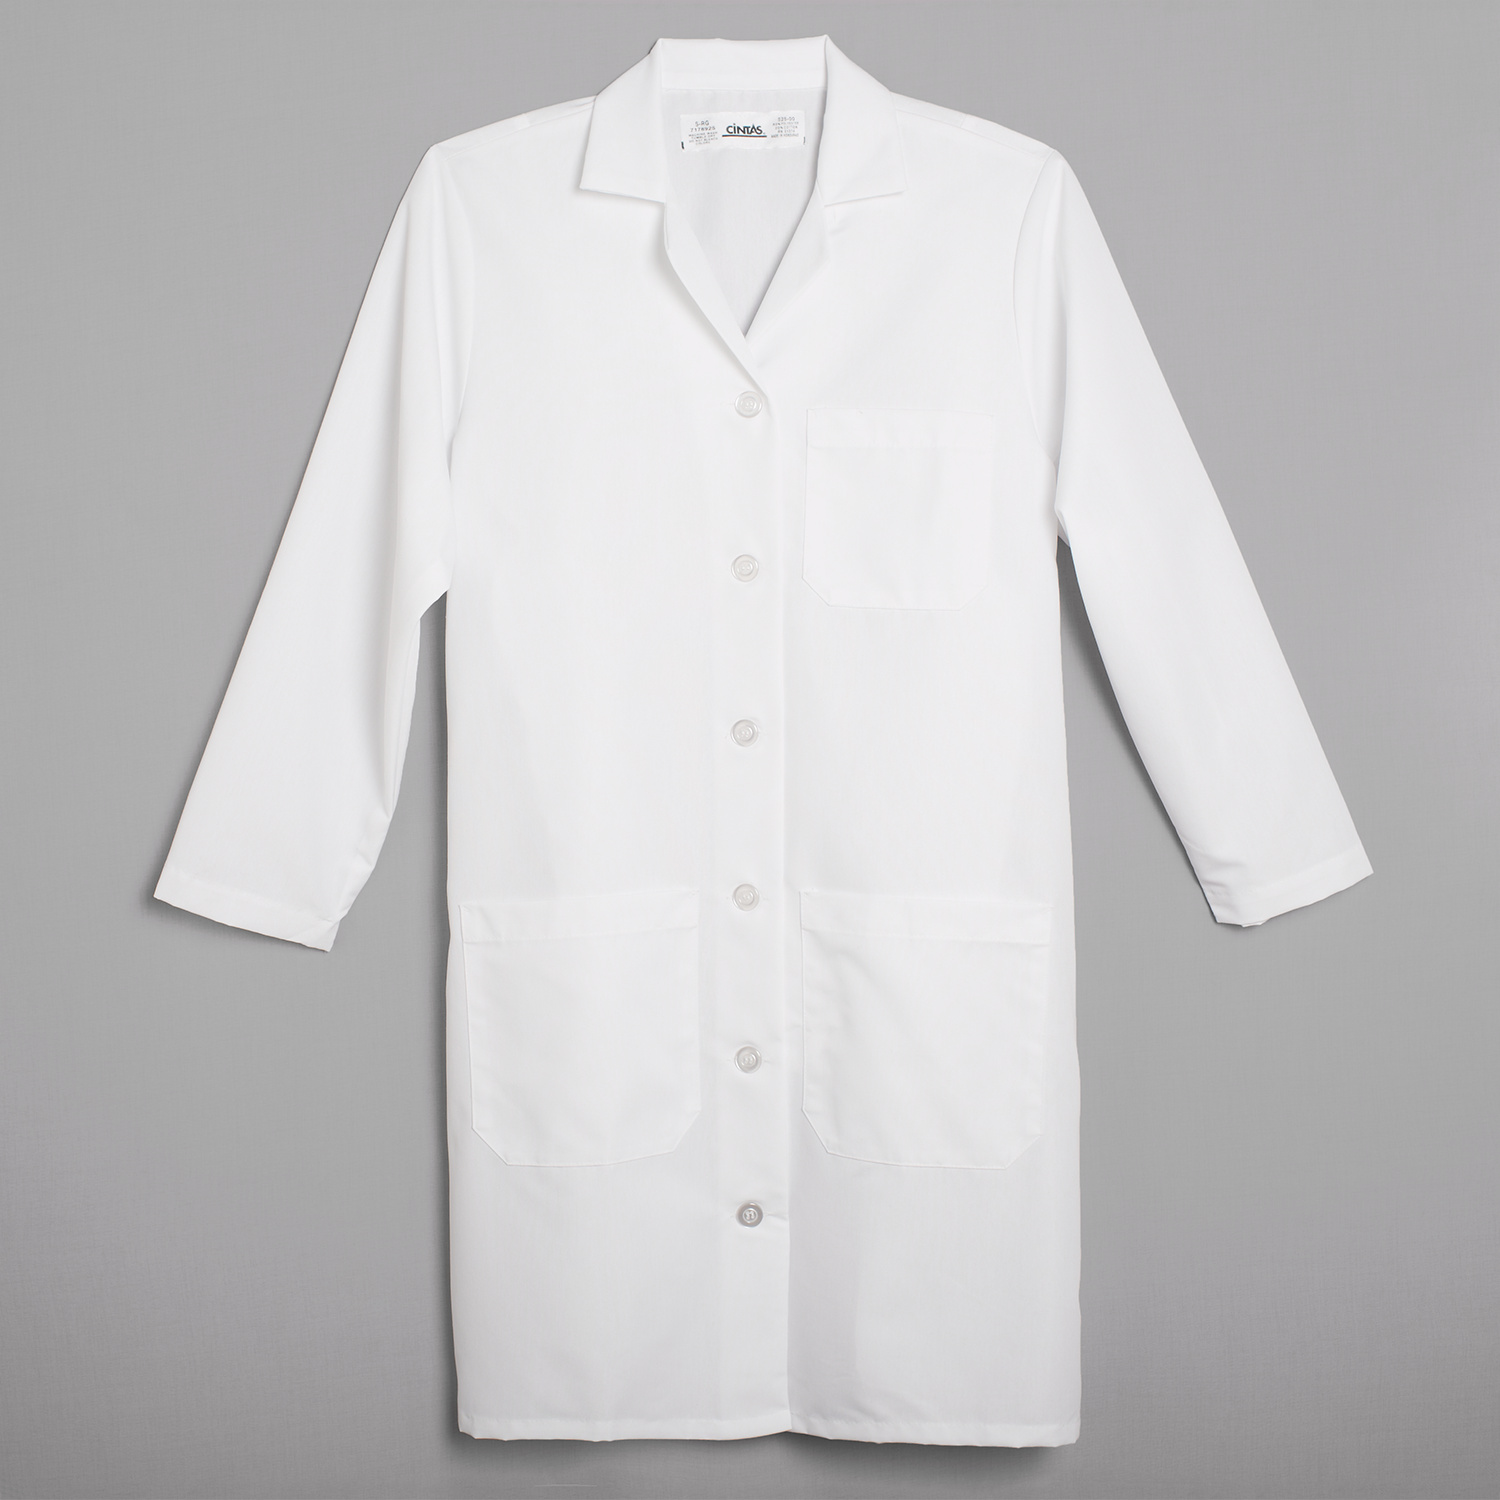 Uniform Lab Coat 14